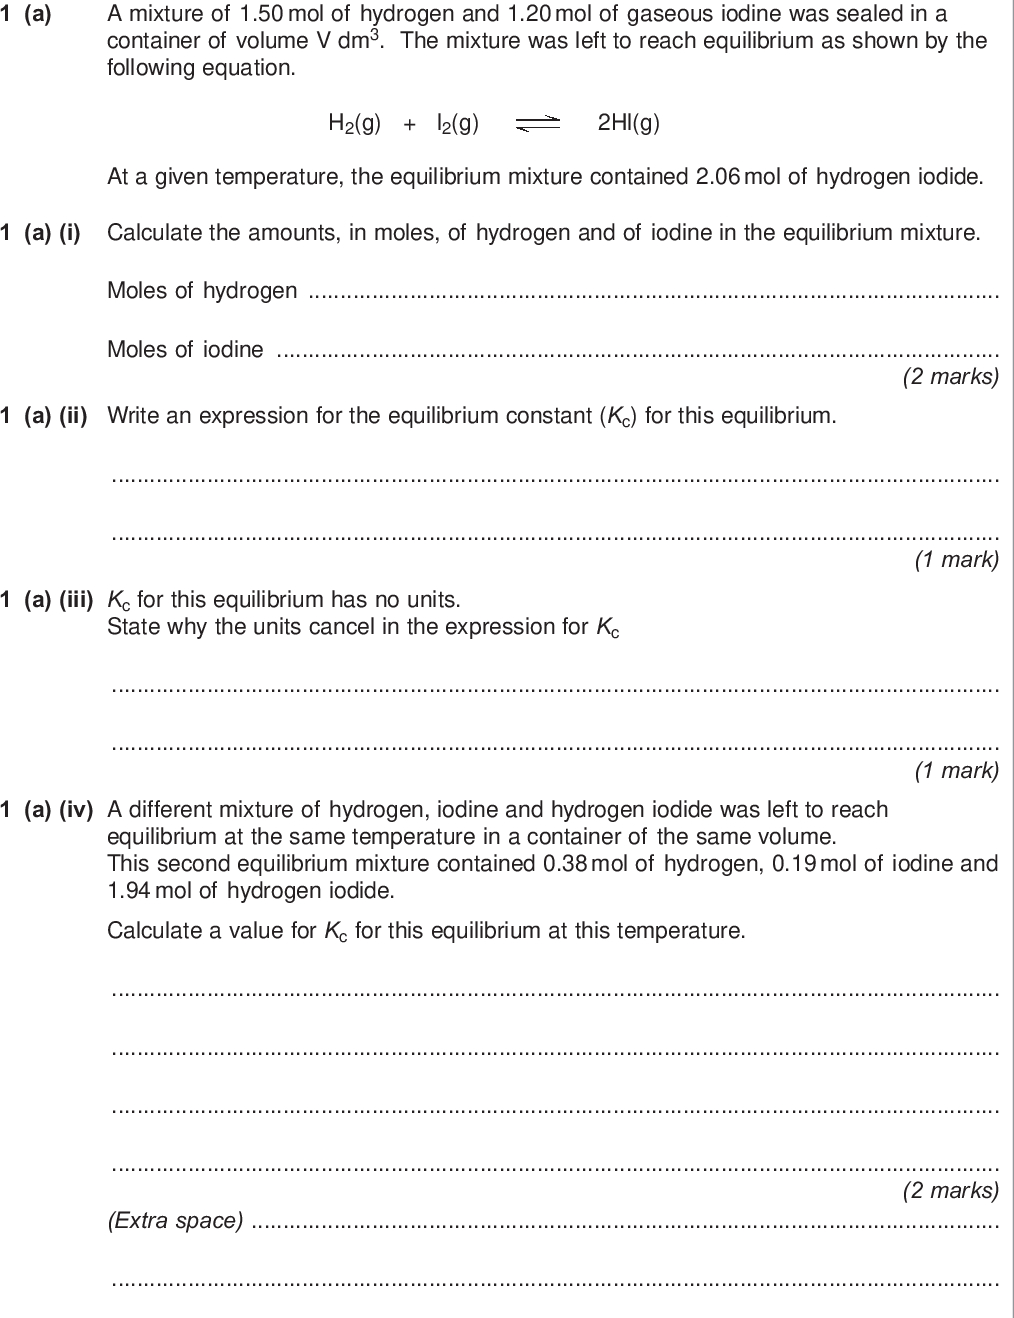 section a answer all questions in the spaces provided do not write outside the box a a mixture of mol of hydrogen and mol of gaseous iodine was sealed in a container of volume v dm the mixture was left to reach equilibrium as shown by the following equation h g l g hl g at a given temperature the equilibrium mixture contained mol of hydrogen iodide a i calculate the amounts in moles of hydrogen and of iodine in the equilibrium mixture moles of hydrogen moles of iodine marks a ii write an expression for the equilibrium constant kc for this equilibrium mark a iii kc for this equilibrium has no units state why the units cancel in the expression for kc mark a iv a different mixture of hydrogen iodine and hydrogen iodide was left to reach equilibrium at the same temperature in a container of the same volume this second equilibrium mixture contained mol of hydrogen mol of iodine and mol of hydrogen iodide calculate a value for kc for this equilibrium at this temperature marks extra space wmp jun chem do not write outside the box b this question concerns changes made to the four equilibria shown in parts b i to b iv in each case use the information in the table to help you choose from the letters a to e the best description of what happens as a result of the change described write your answer in the box each letter may be used once more than once or not at all position of equilibrium value of equilibrium constant kc remains the same moves to the right moves to the left moves to the right moves to the left same same same different different b i change increase the temperature of the equilibrium mixture at constant pressure h g l g hl g h kj mol b ii change increase the total pressure of the equilibrium mixture at constant temperature h g n g nh g h kj mol mark b iii change add a catalyst to the equilibrium mixture at constant temperature co g h o g co g h g h kj mol b iv change add chlorine to the equilibrium mixture at constant temperature pcl g pcl g cl g h kj mol mark ma